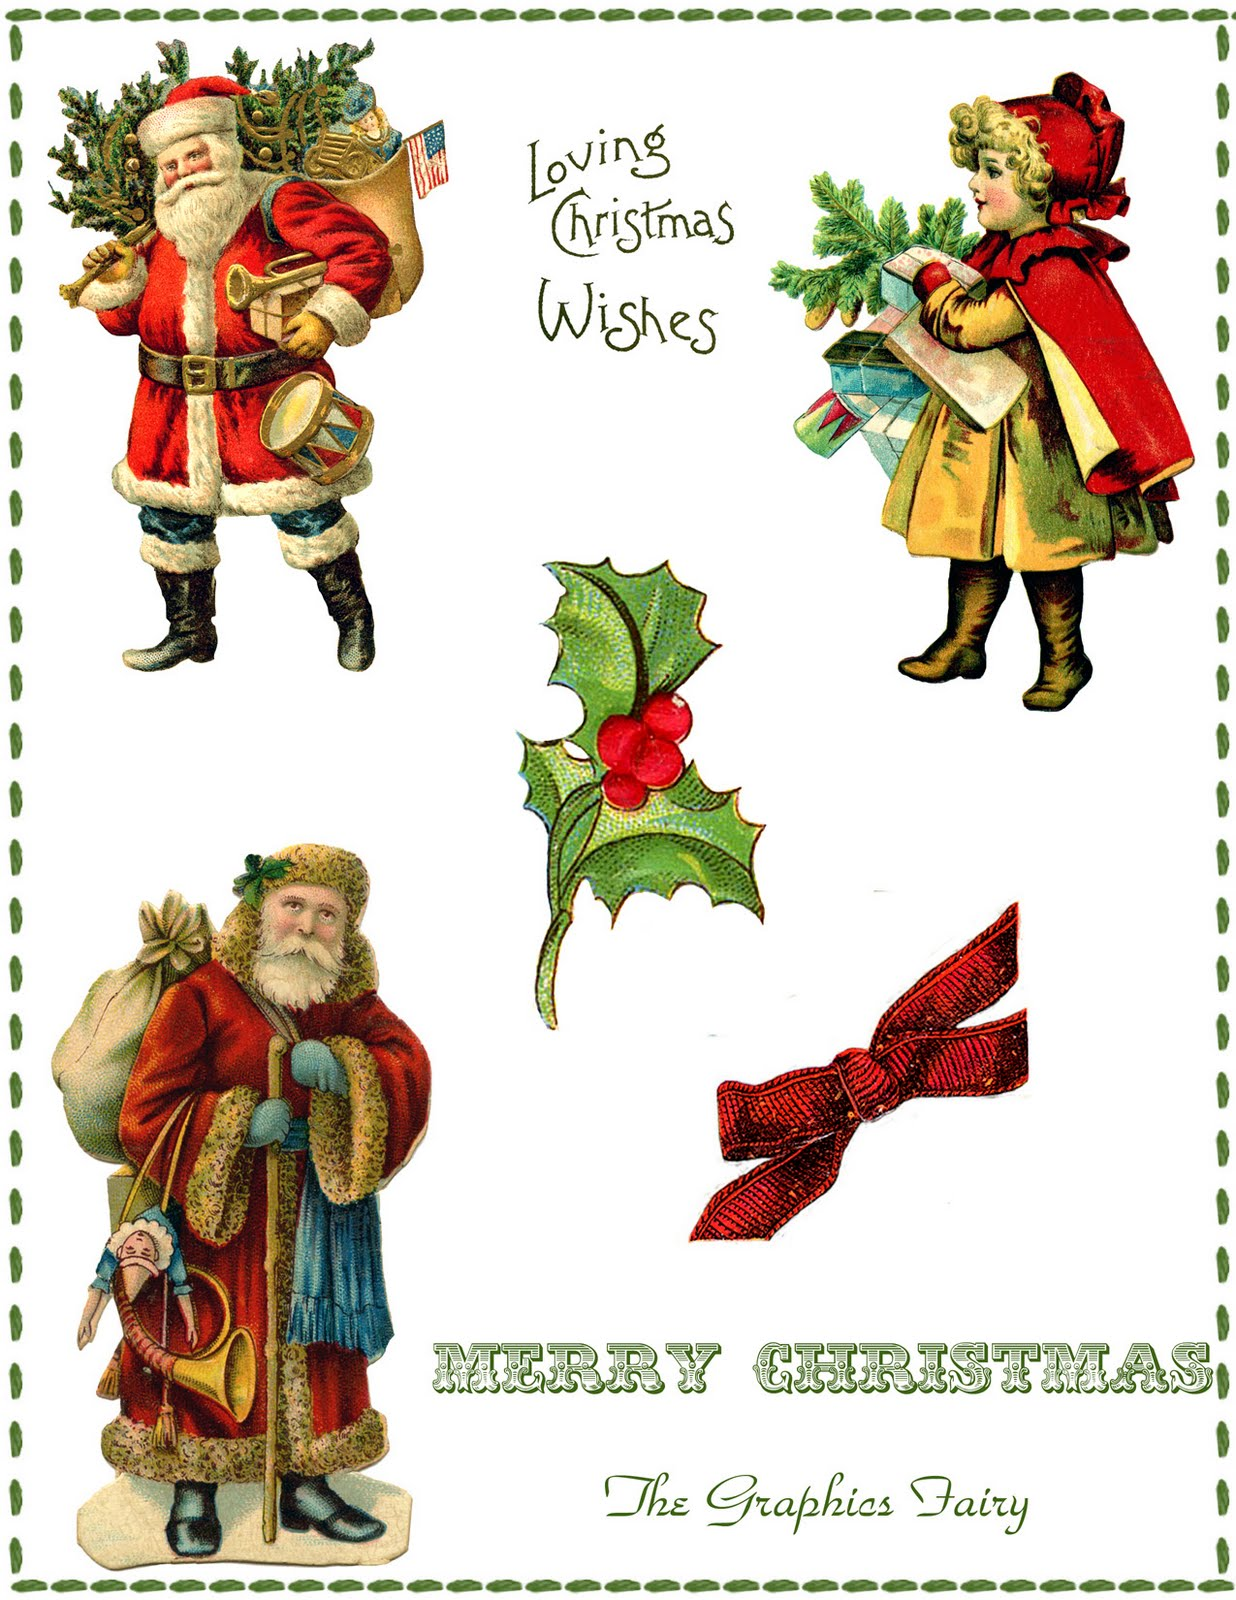 Vintage Christmas Collage Printable - The Graphics Fairy